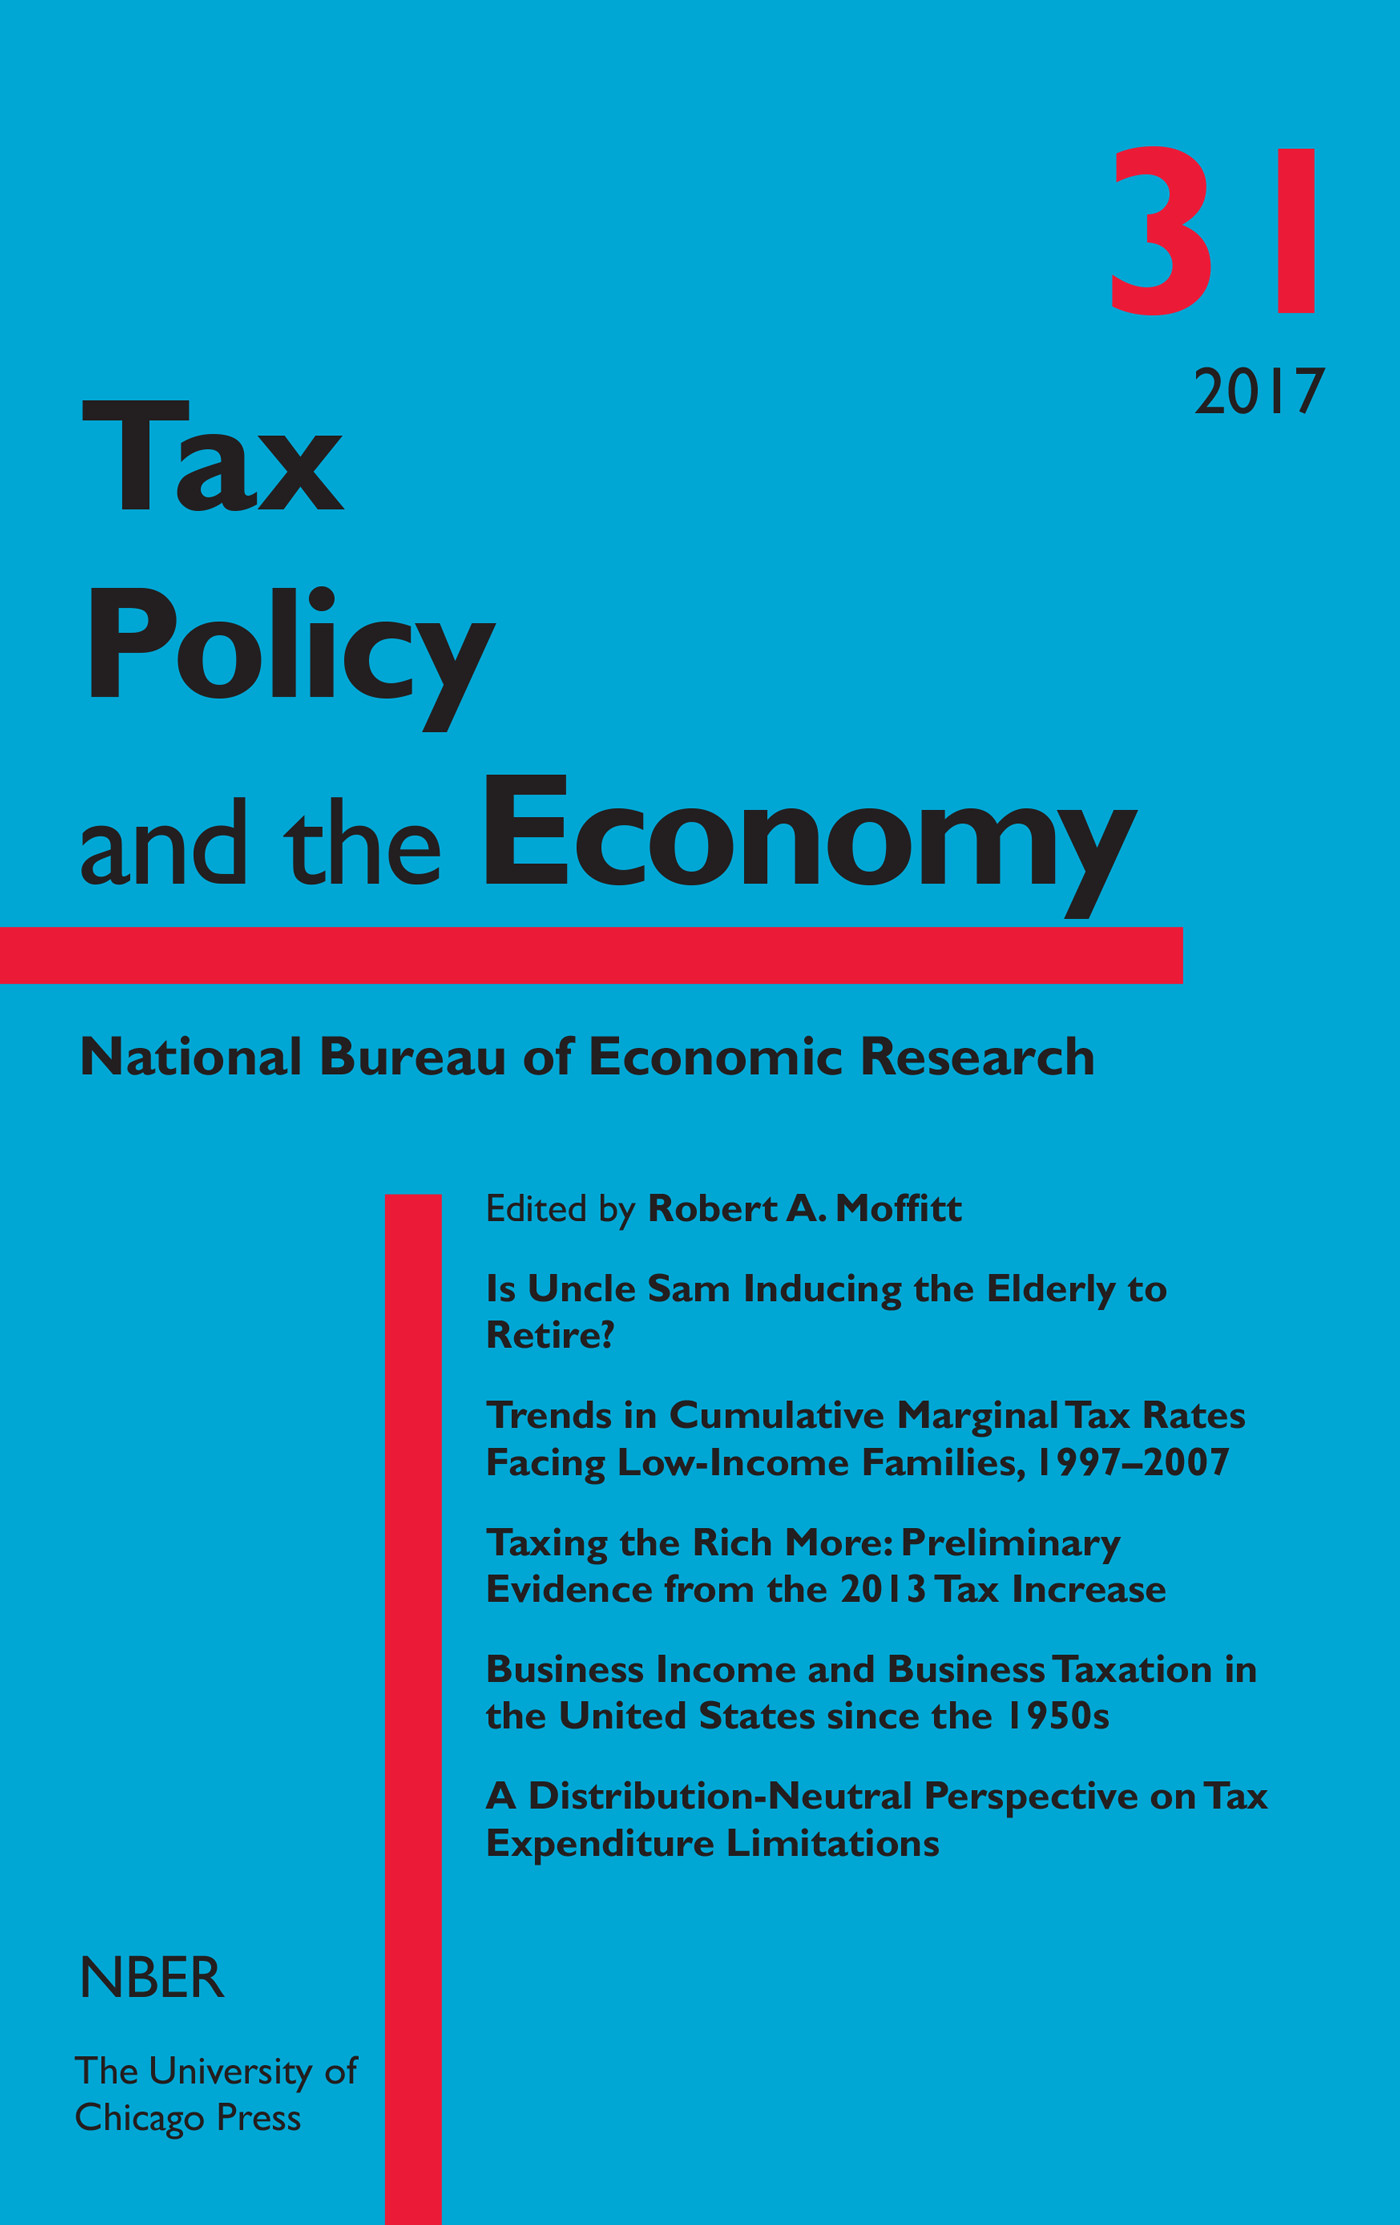 Tax Policy and the Economy, Volume 31